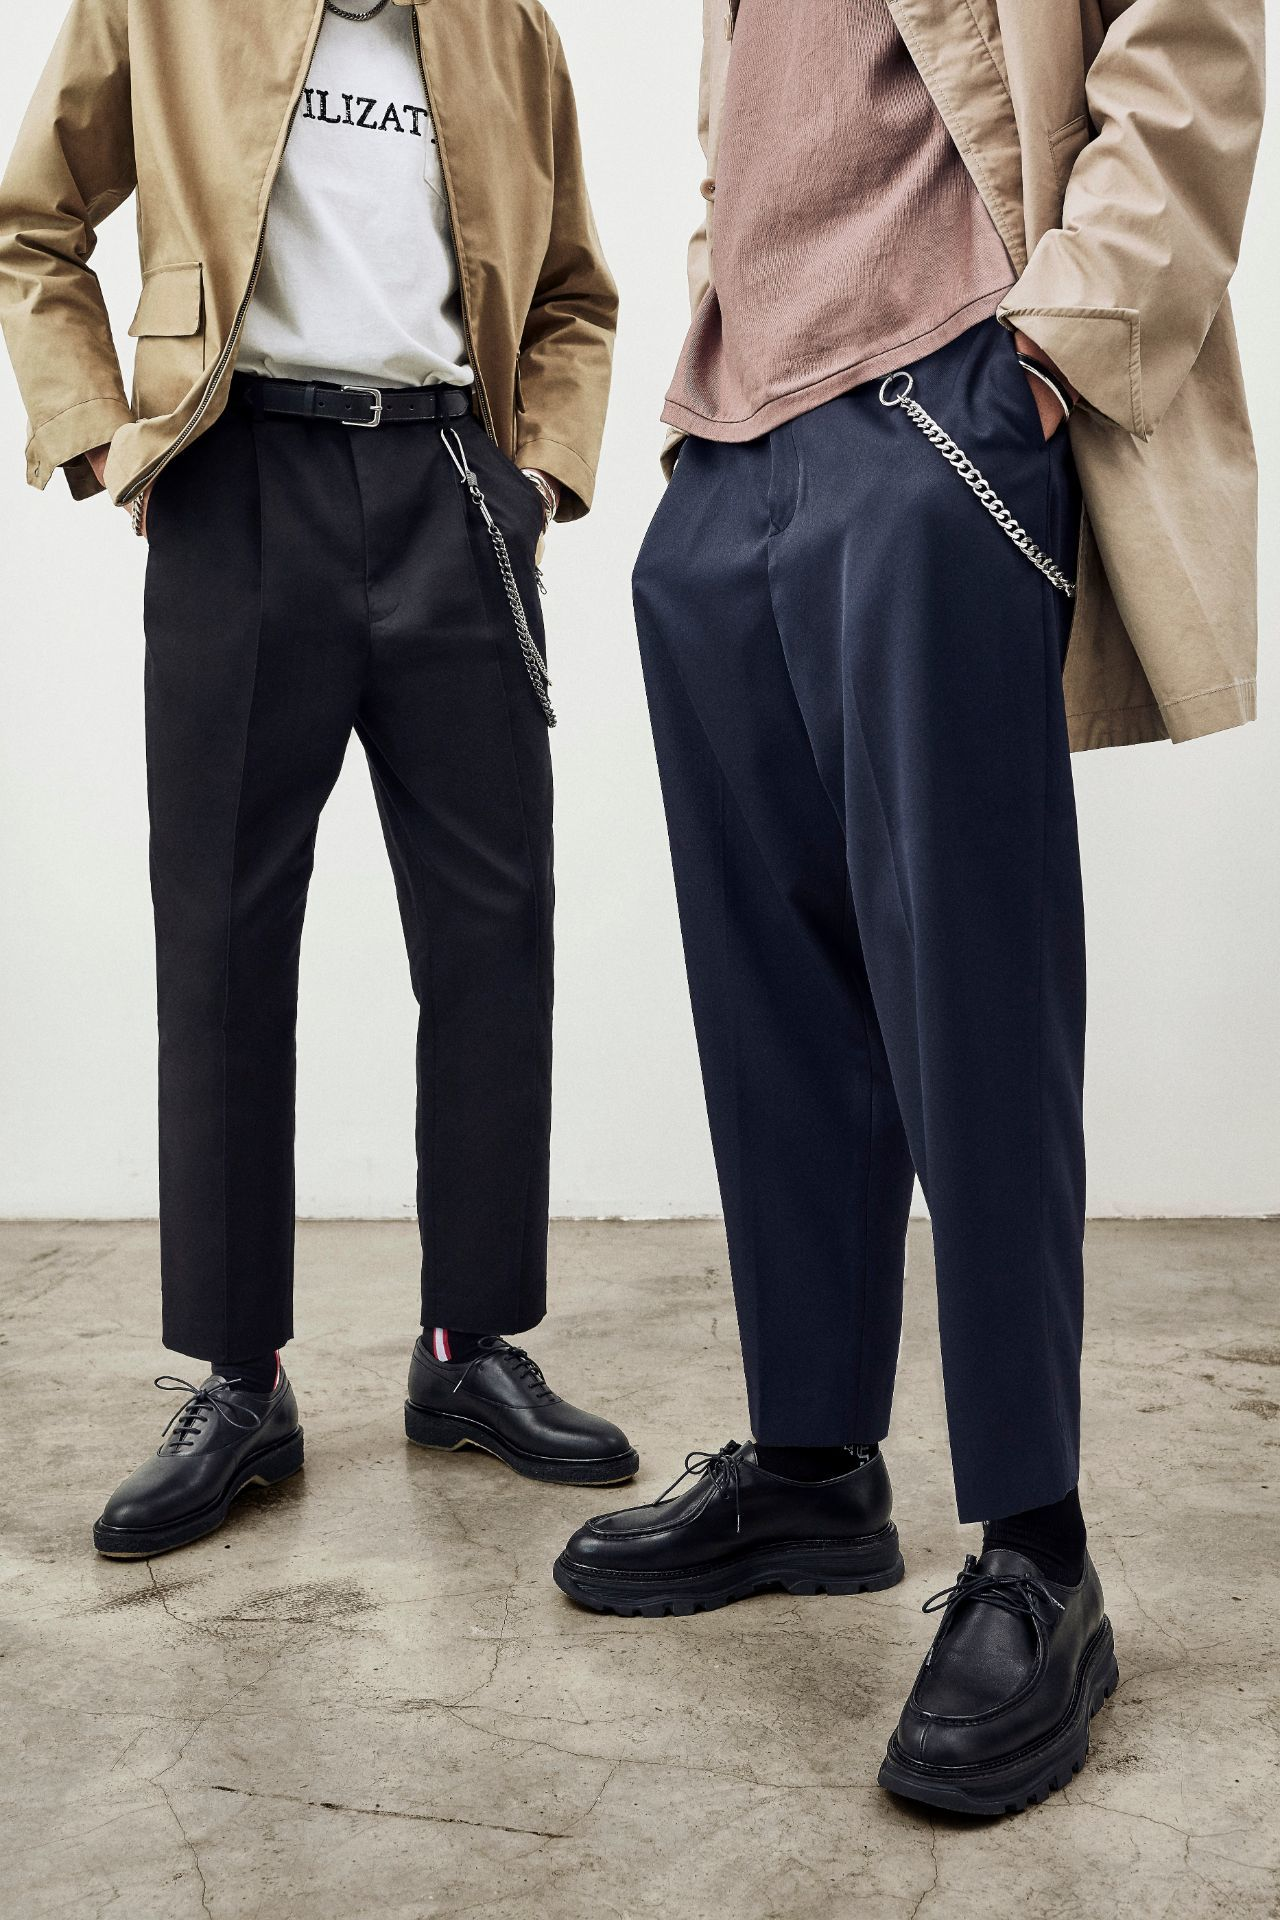 gentleman 2019 spring lookbook 1 5